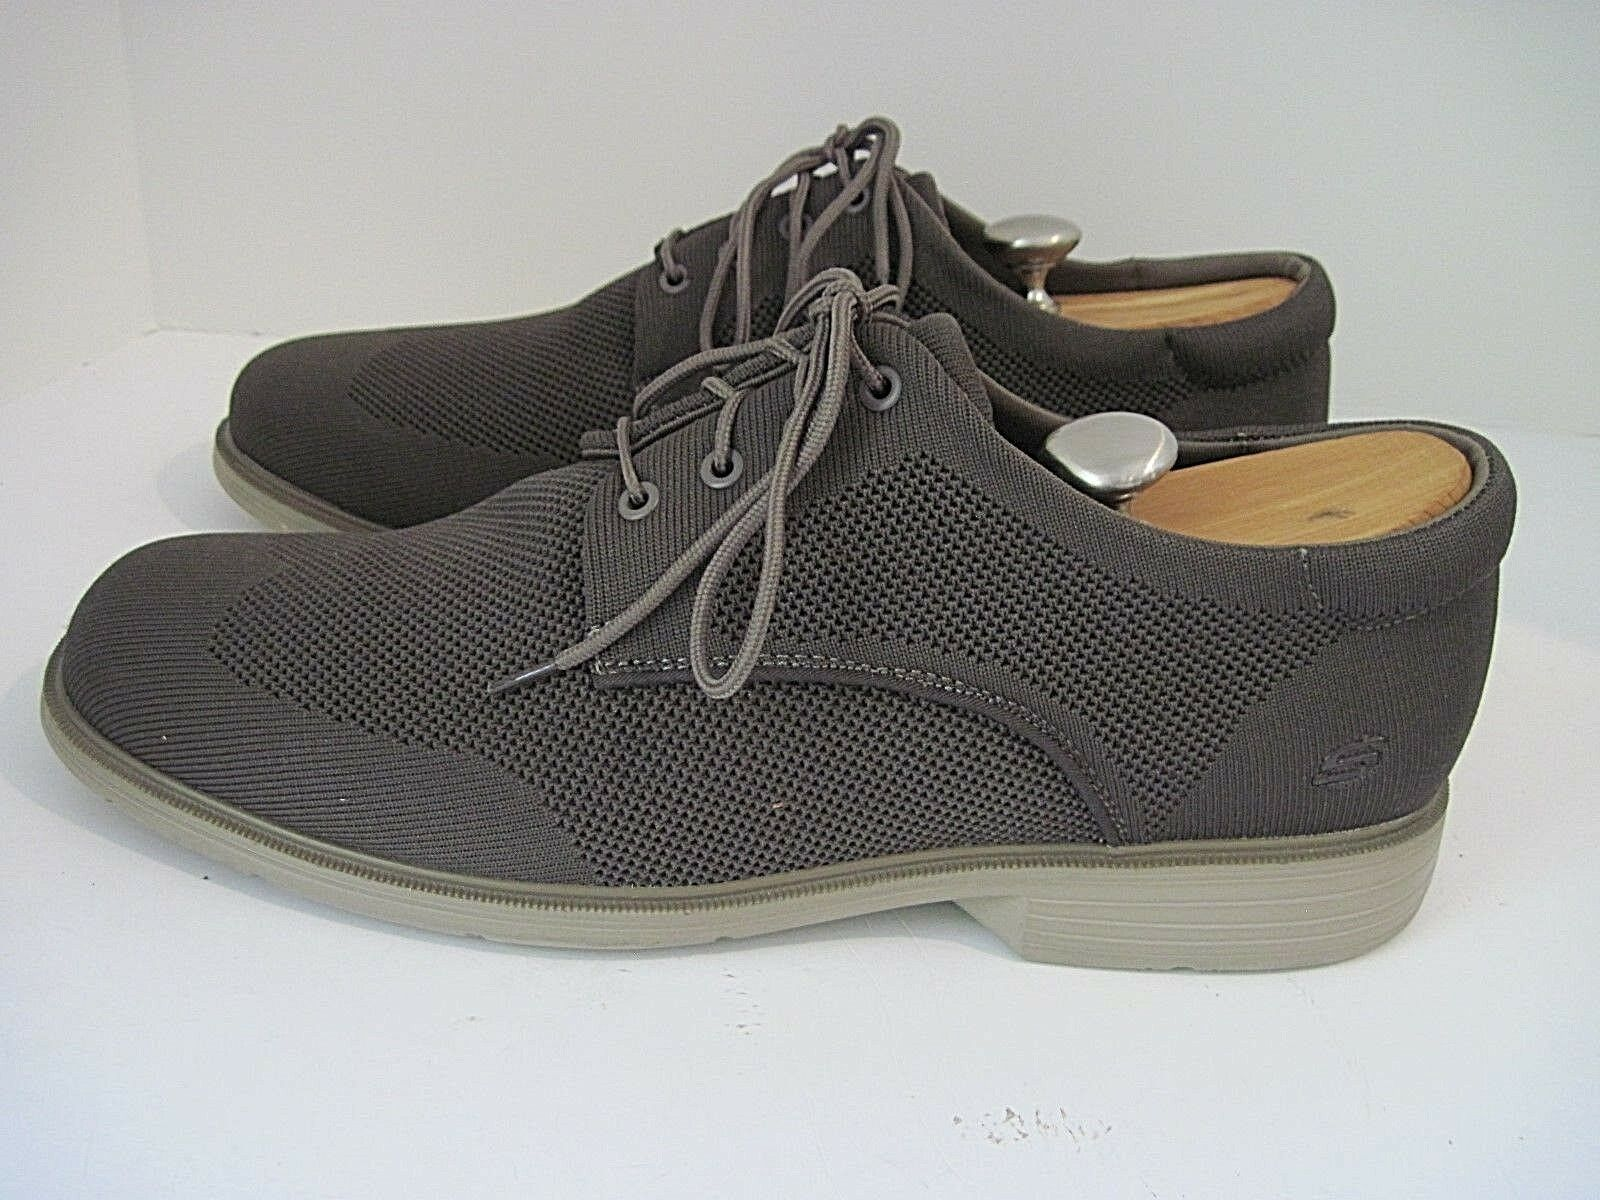 Mens Skechers Brown Wing Tip Lace Textile Lace Tip Up Walking Shoes Superfeet Insoles 14M e2381e